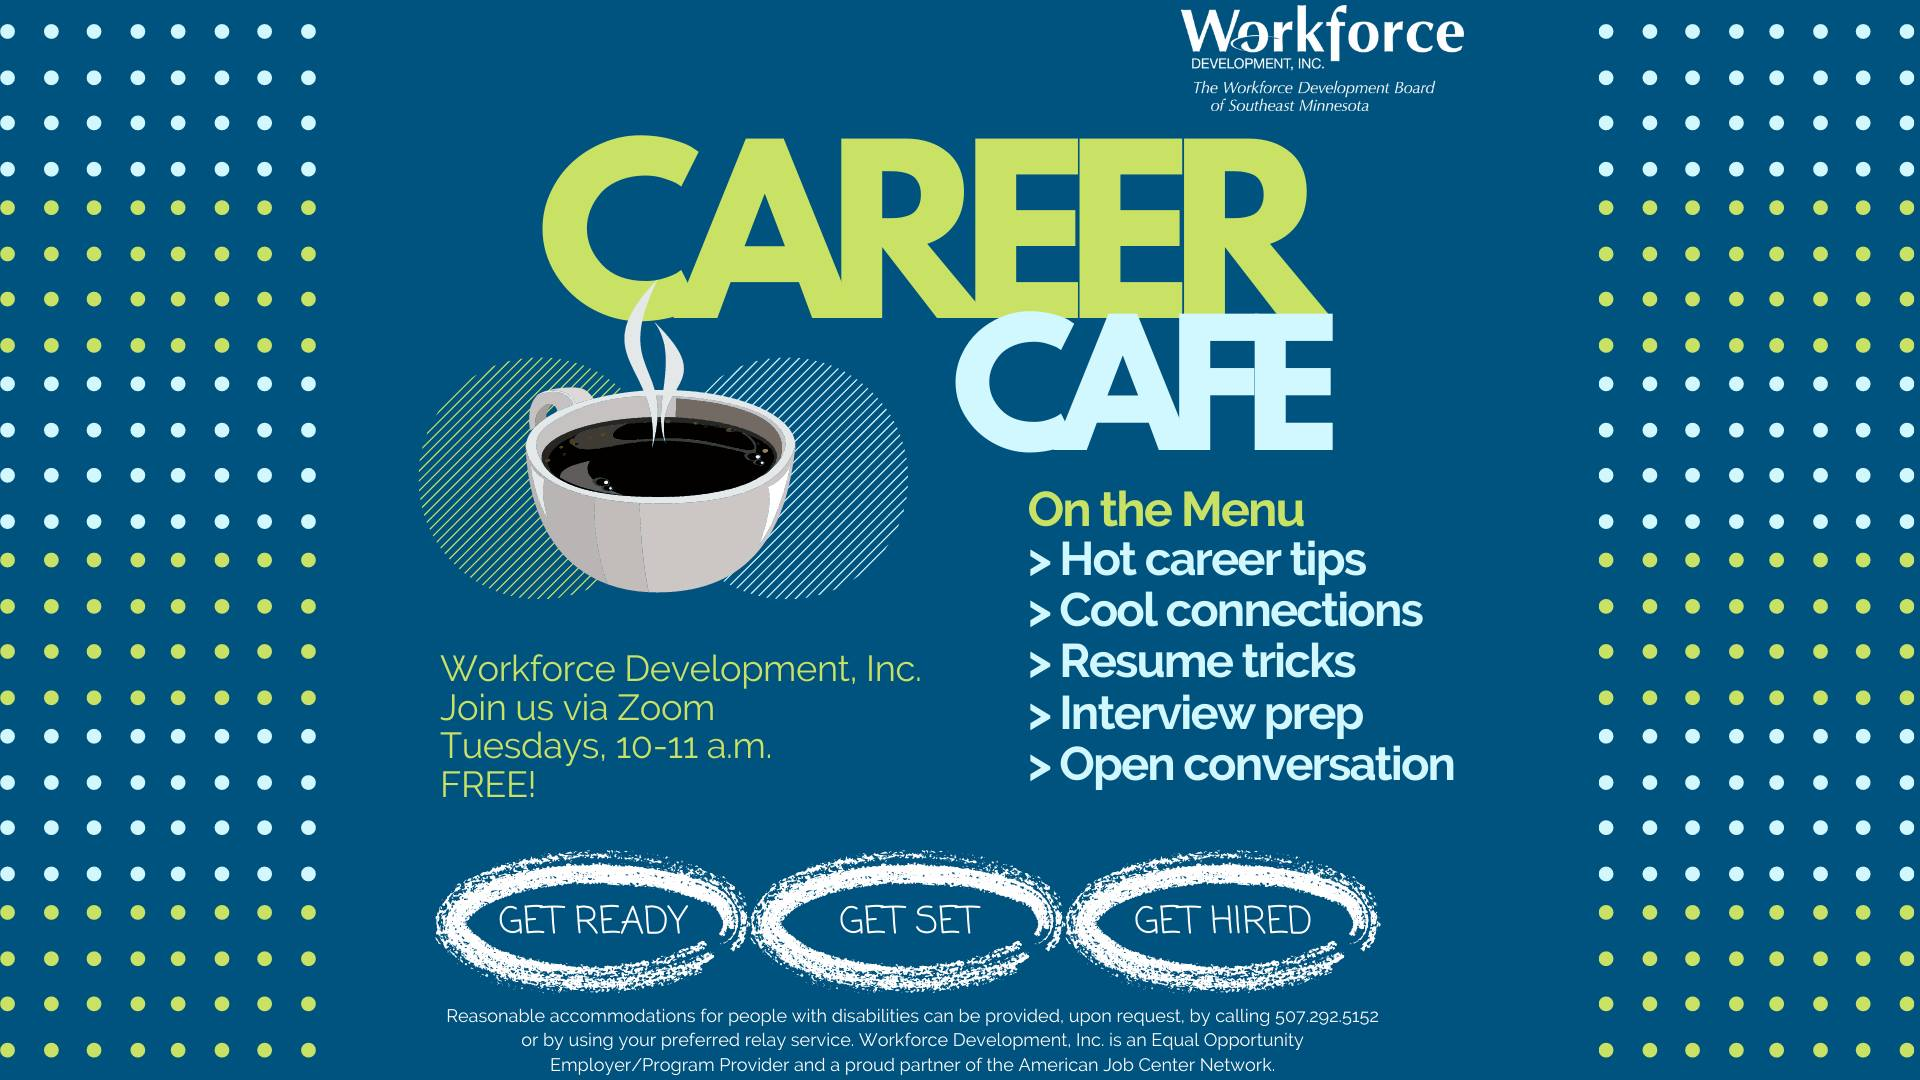 career cafe